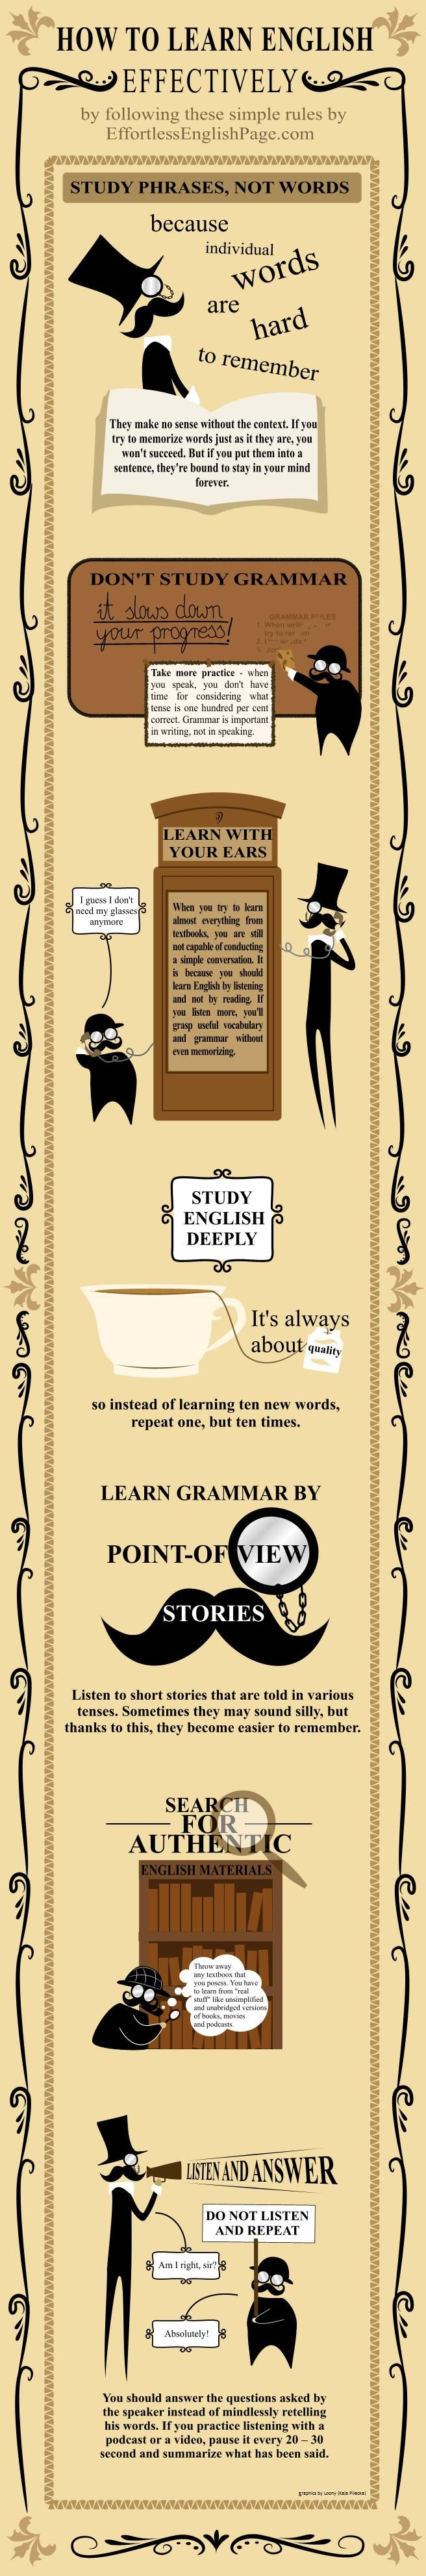 How To Learn ANY language Effectively        Repinned by Chesapeake College Adult Ed. We offer free classes on the Eastern Shore of MD to help you earn your GED - H.S. Diploma or Learn English (ESL).  www.Chesapeake.edu